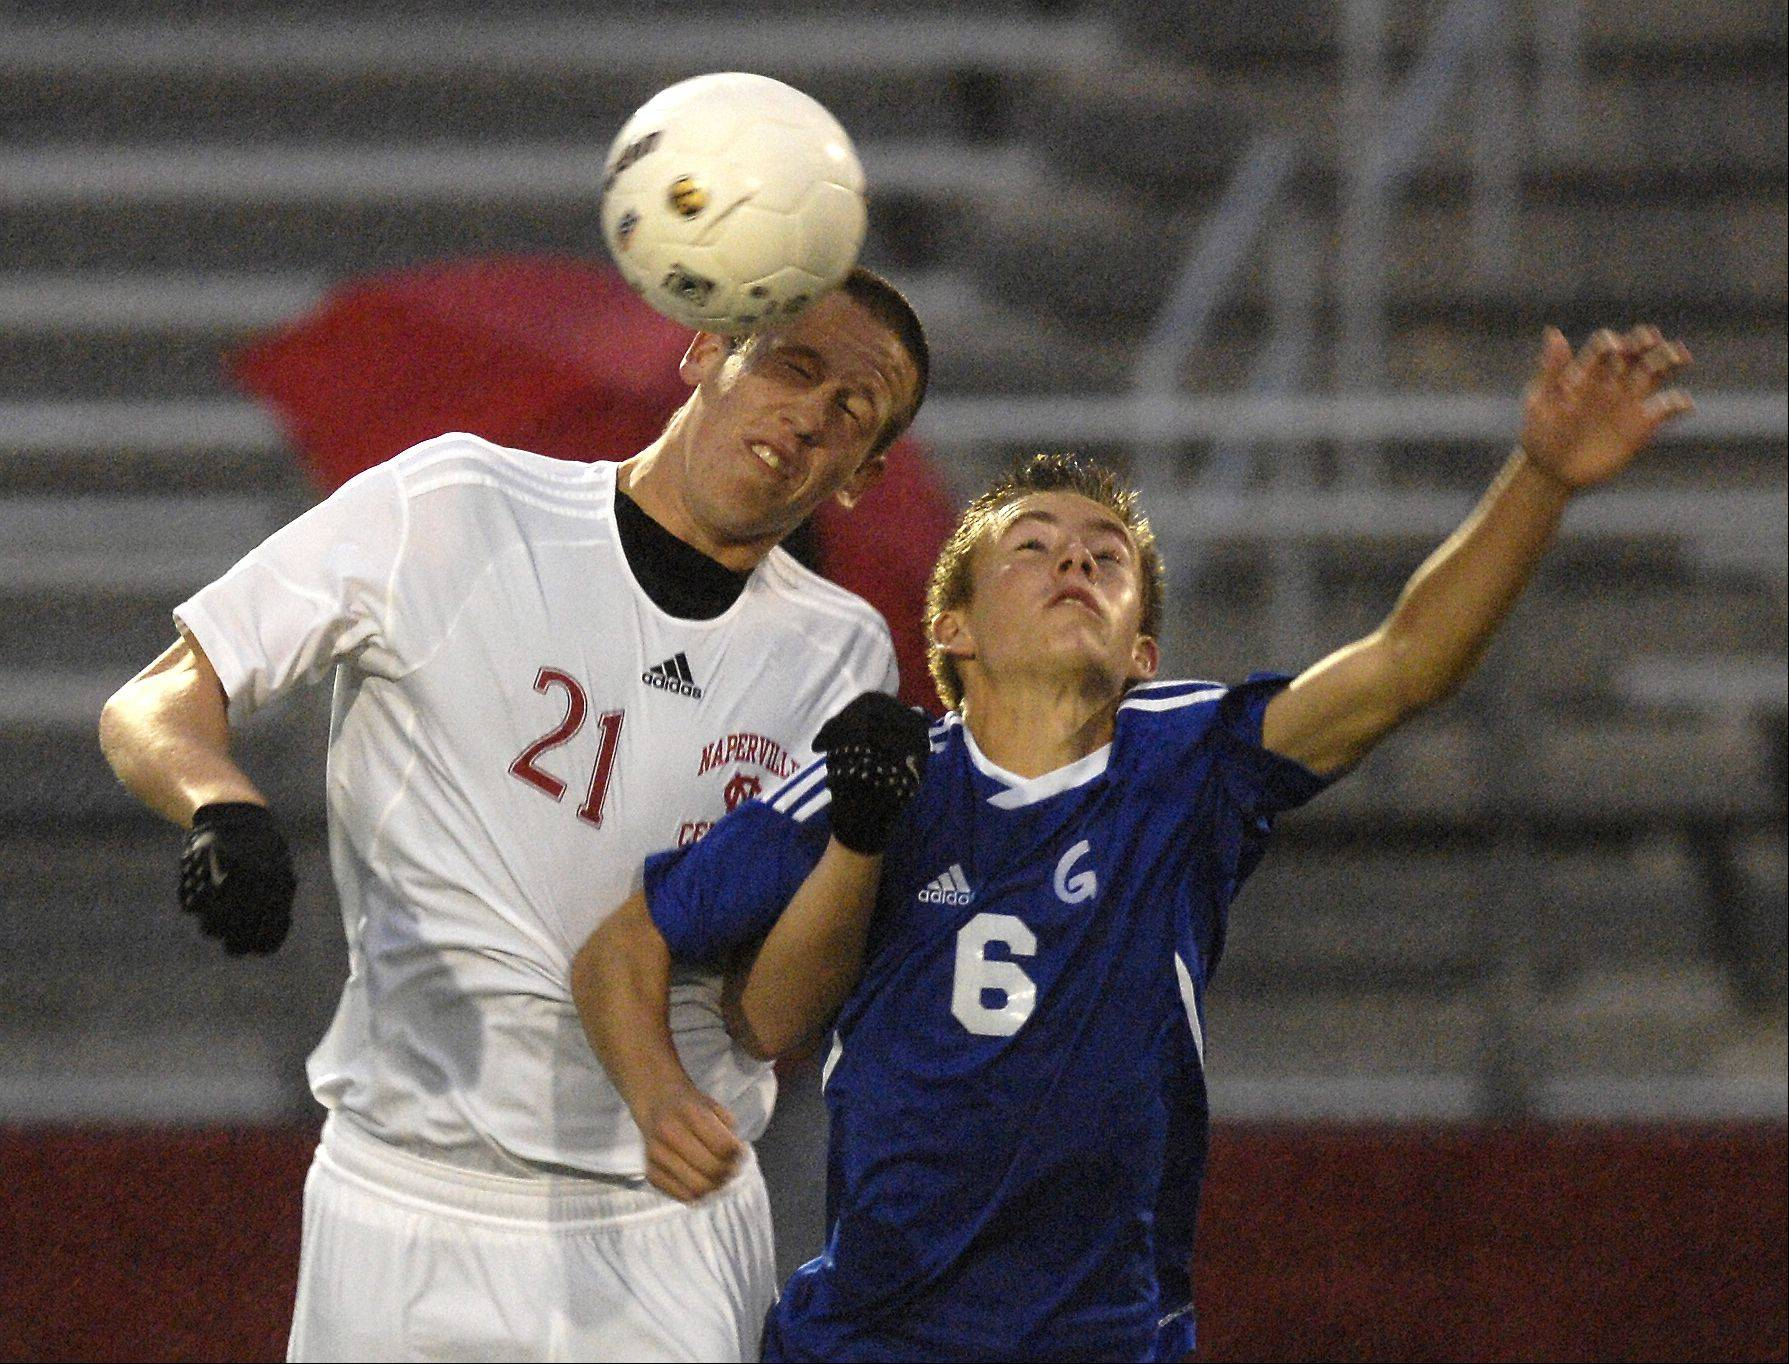 Jack Patrick of Naperville Central and Grant Bracken of Geneva battle for the ball during the Redhawks 7-0 win over the Vikings, in the boys soccer regional semifinals in Naperville, Wednesday.